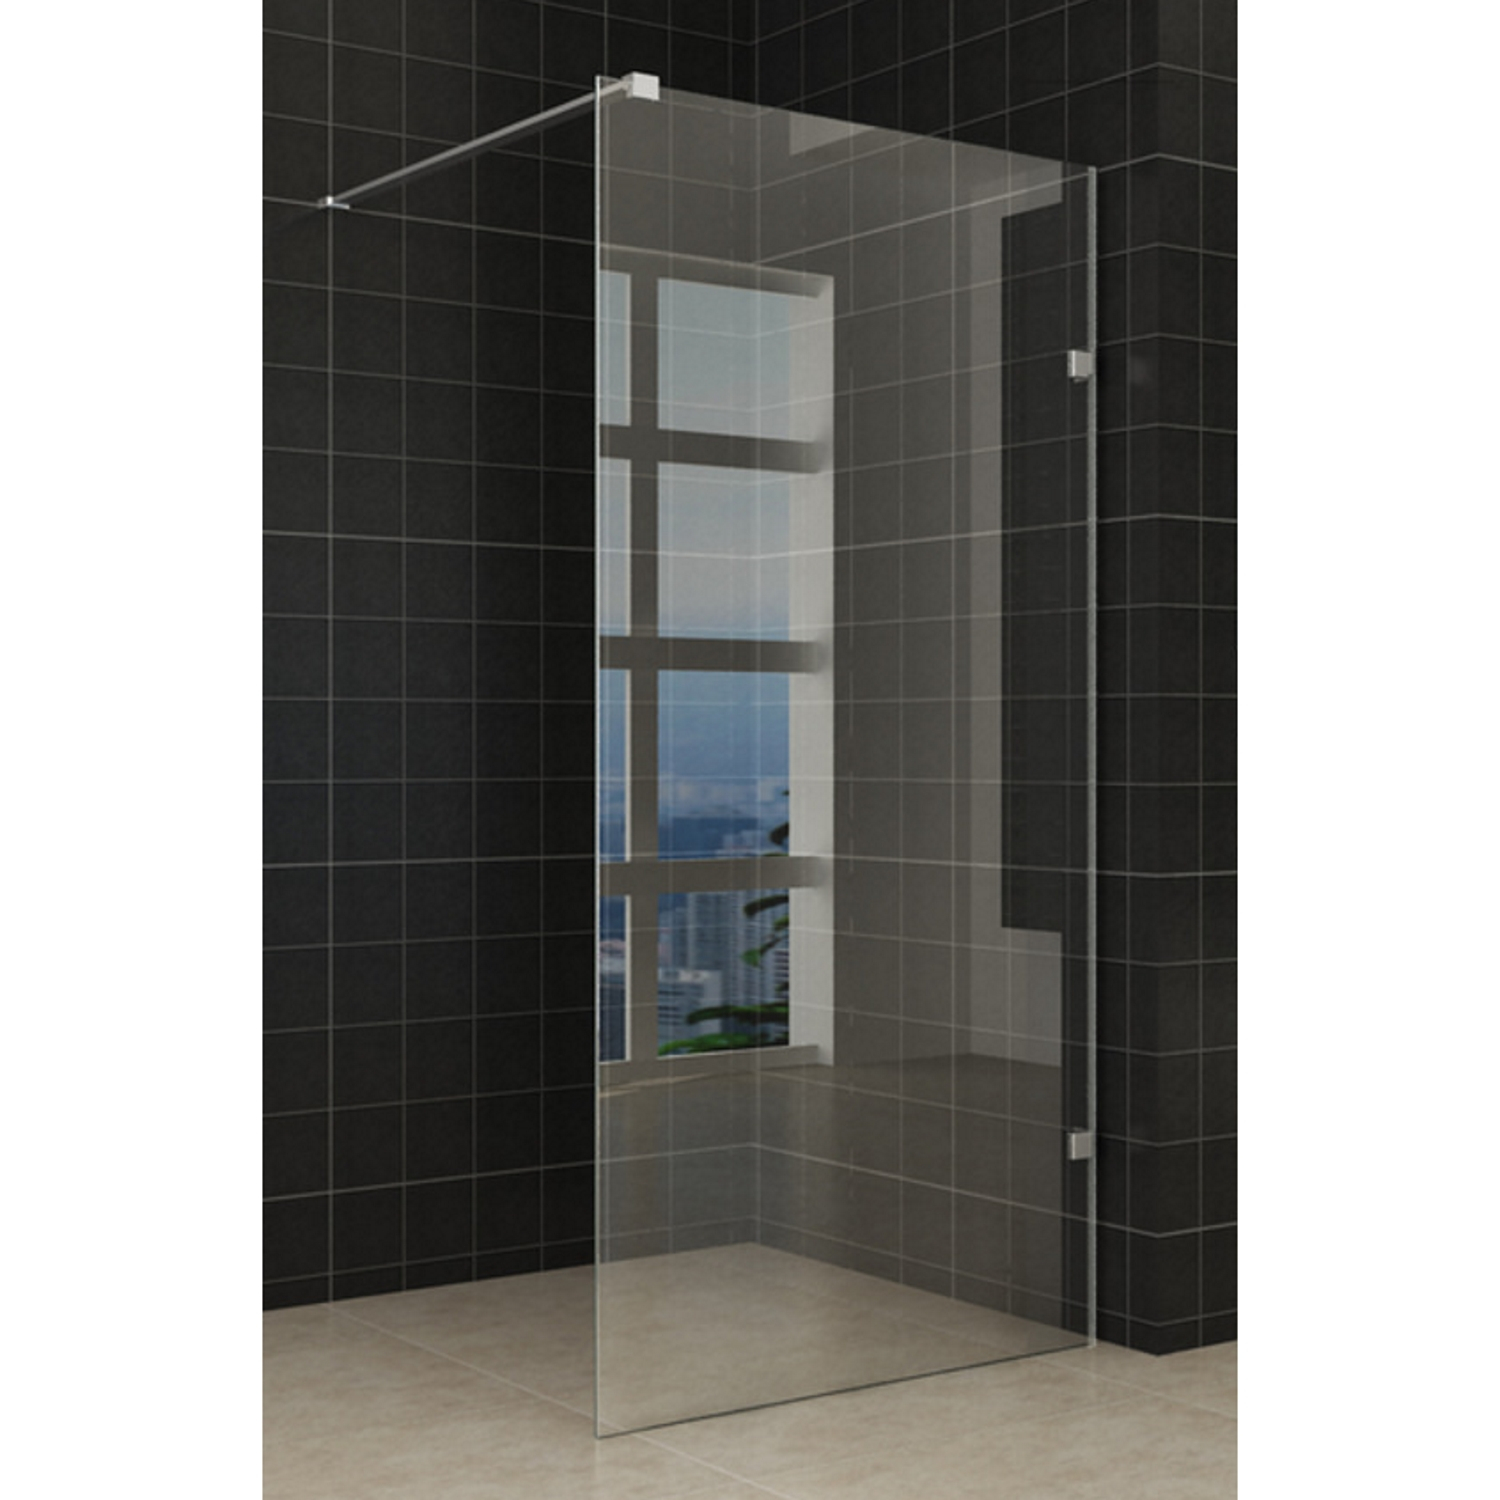 Douche 67540 BWS Edge Douchewand Profielloos 100×200 cm 8 mm NANO coating